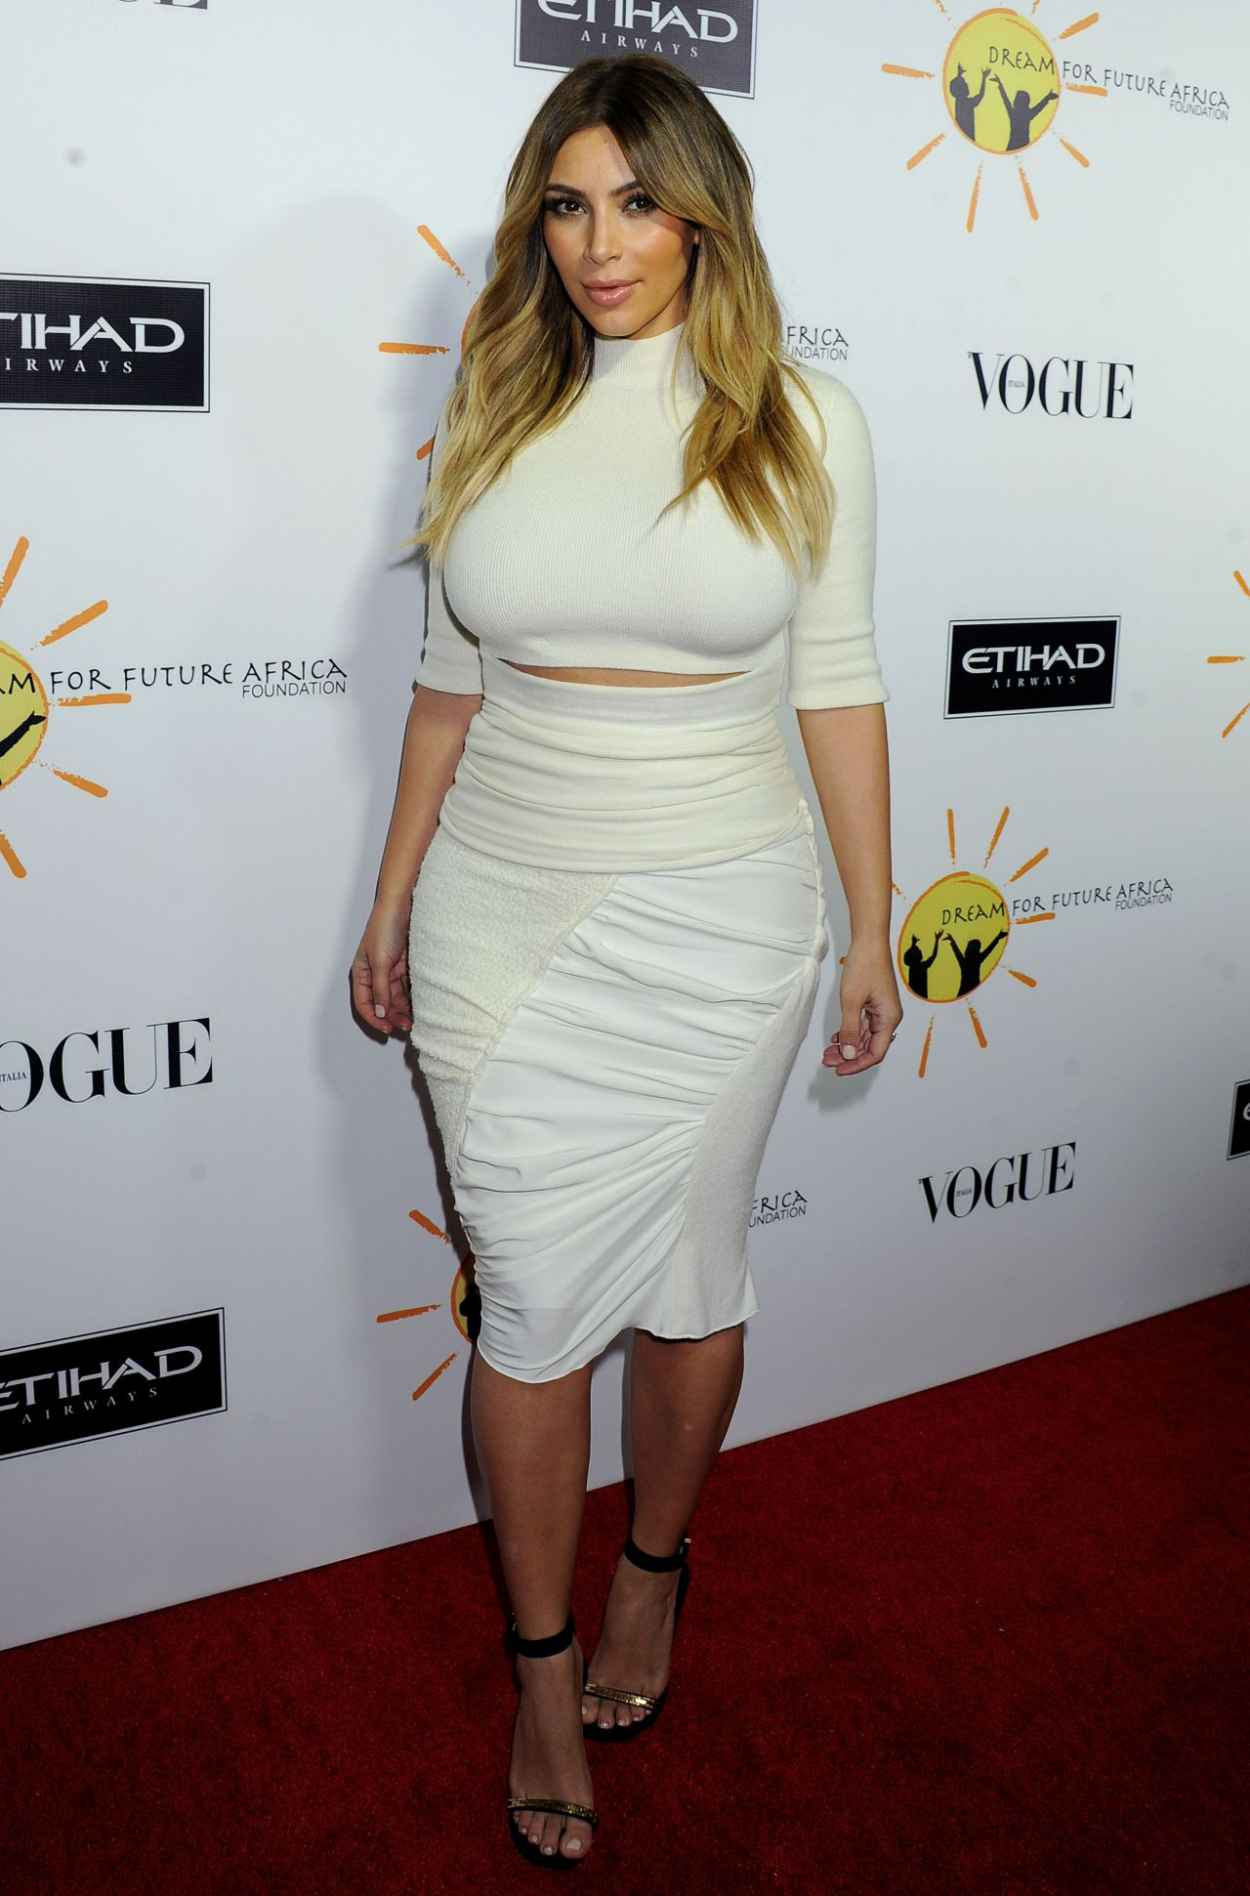 Kim Kardashian on Red Carpet - Dream For Future Africa Foundation Gala-1